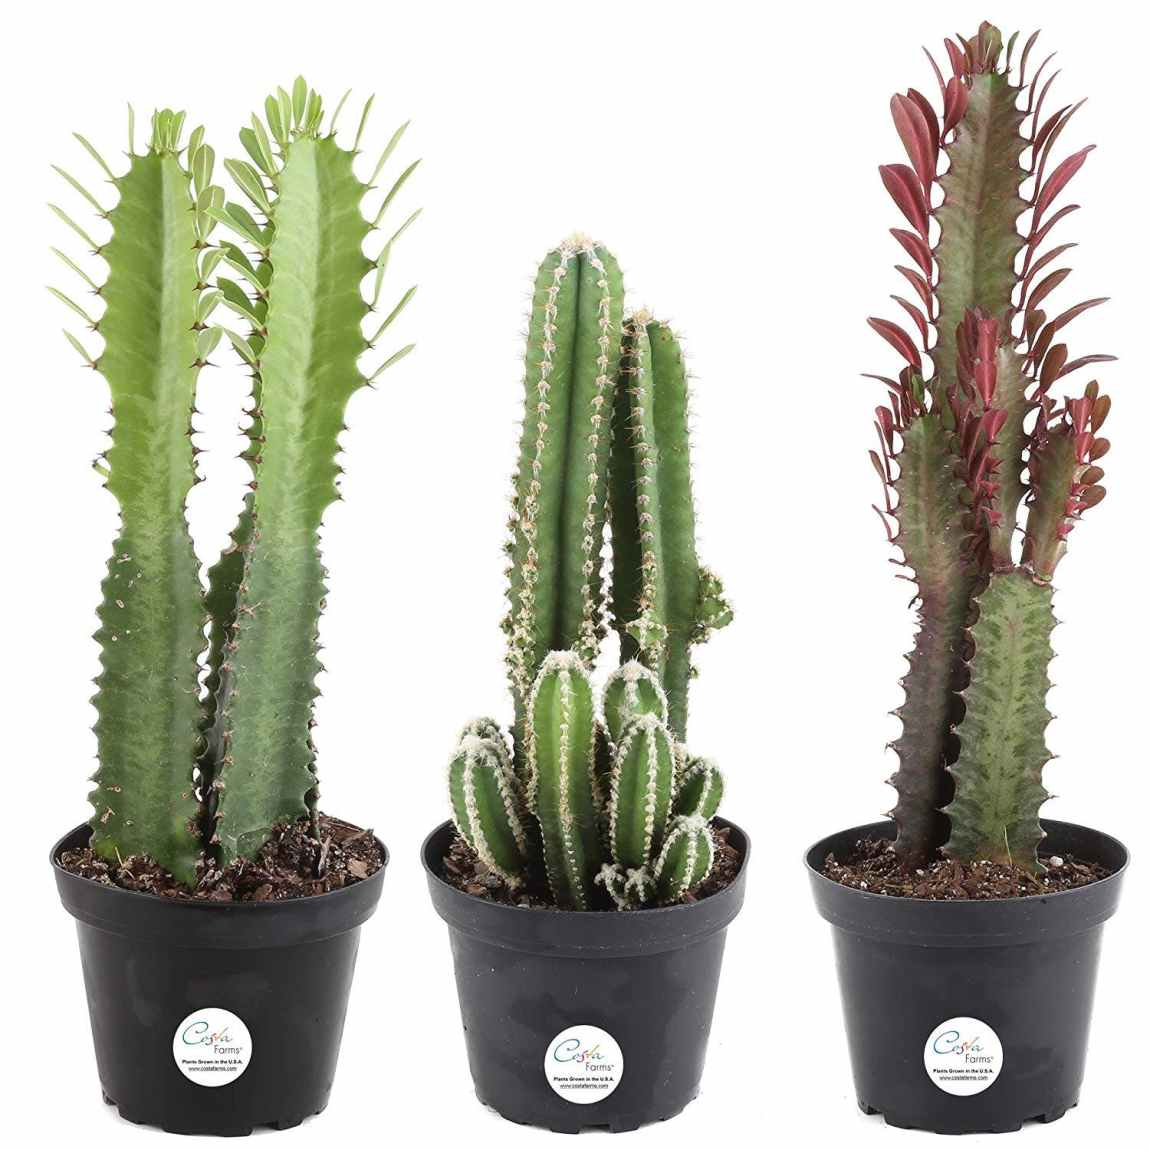 houseplants, indoor plants, plants, cactus, cacti